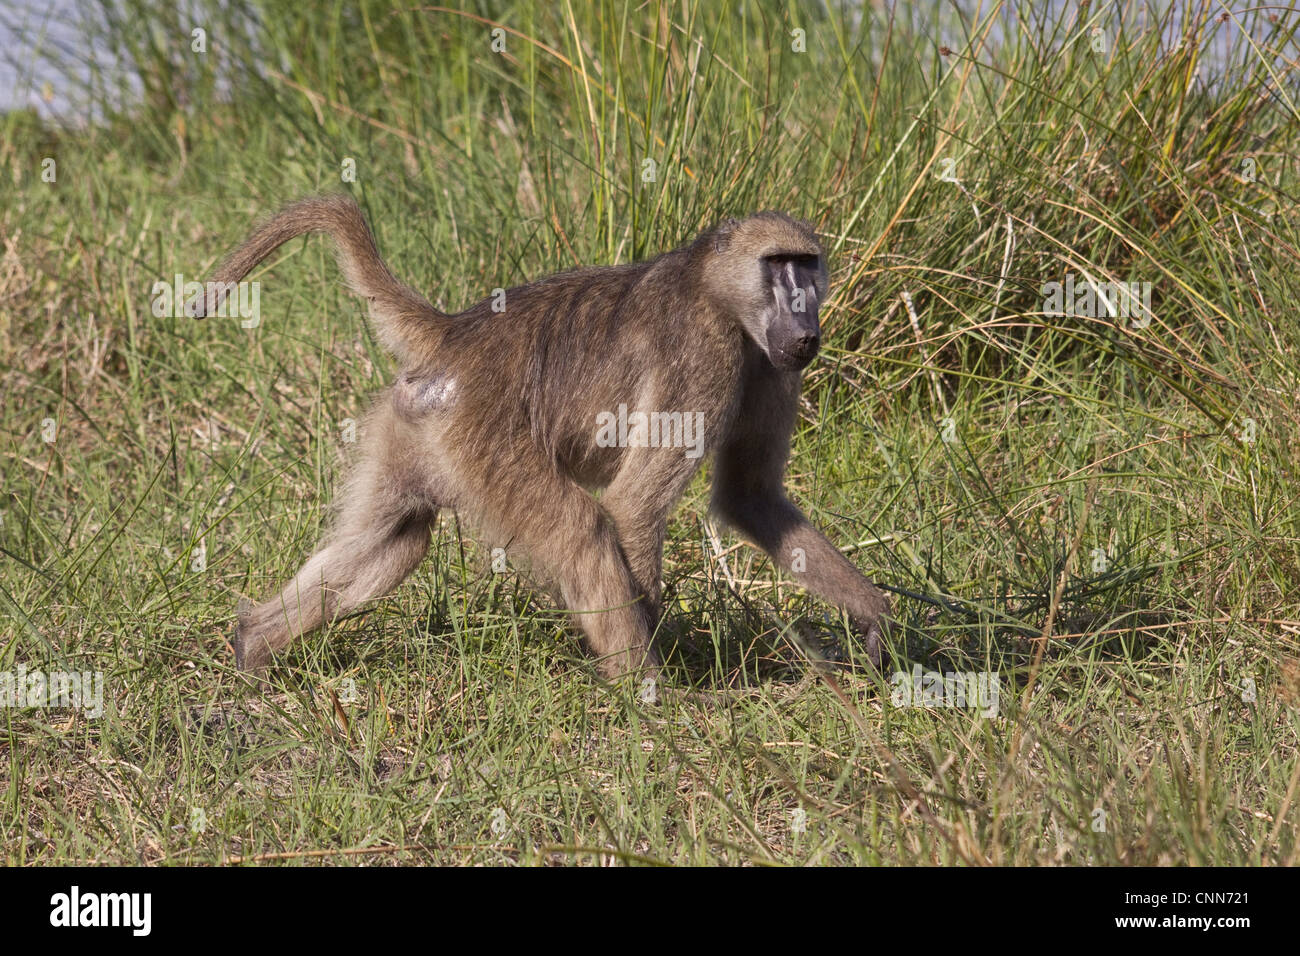 Chacma Baboon is found in southern Africa, ranging from South Africa north to Angola, Zambia, and Mozambique. - Stock Image